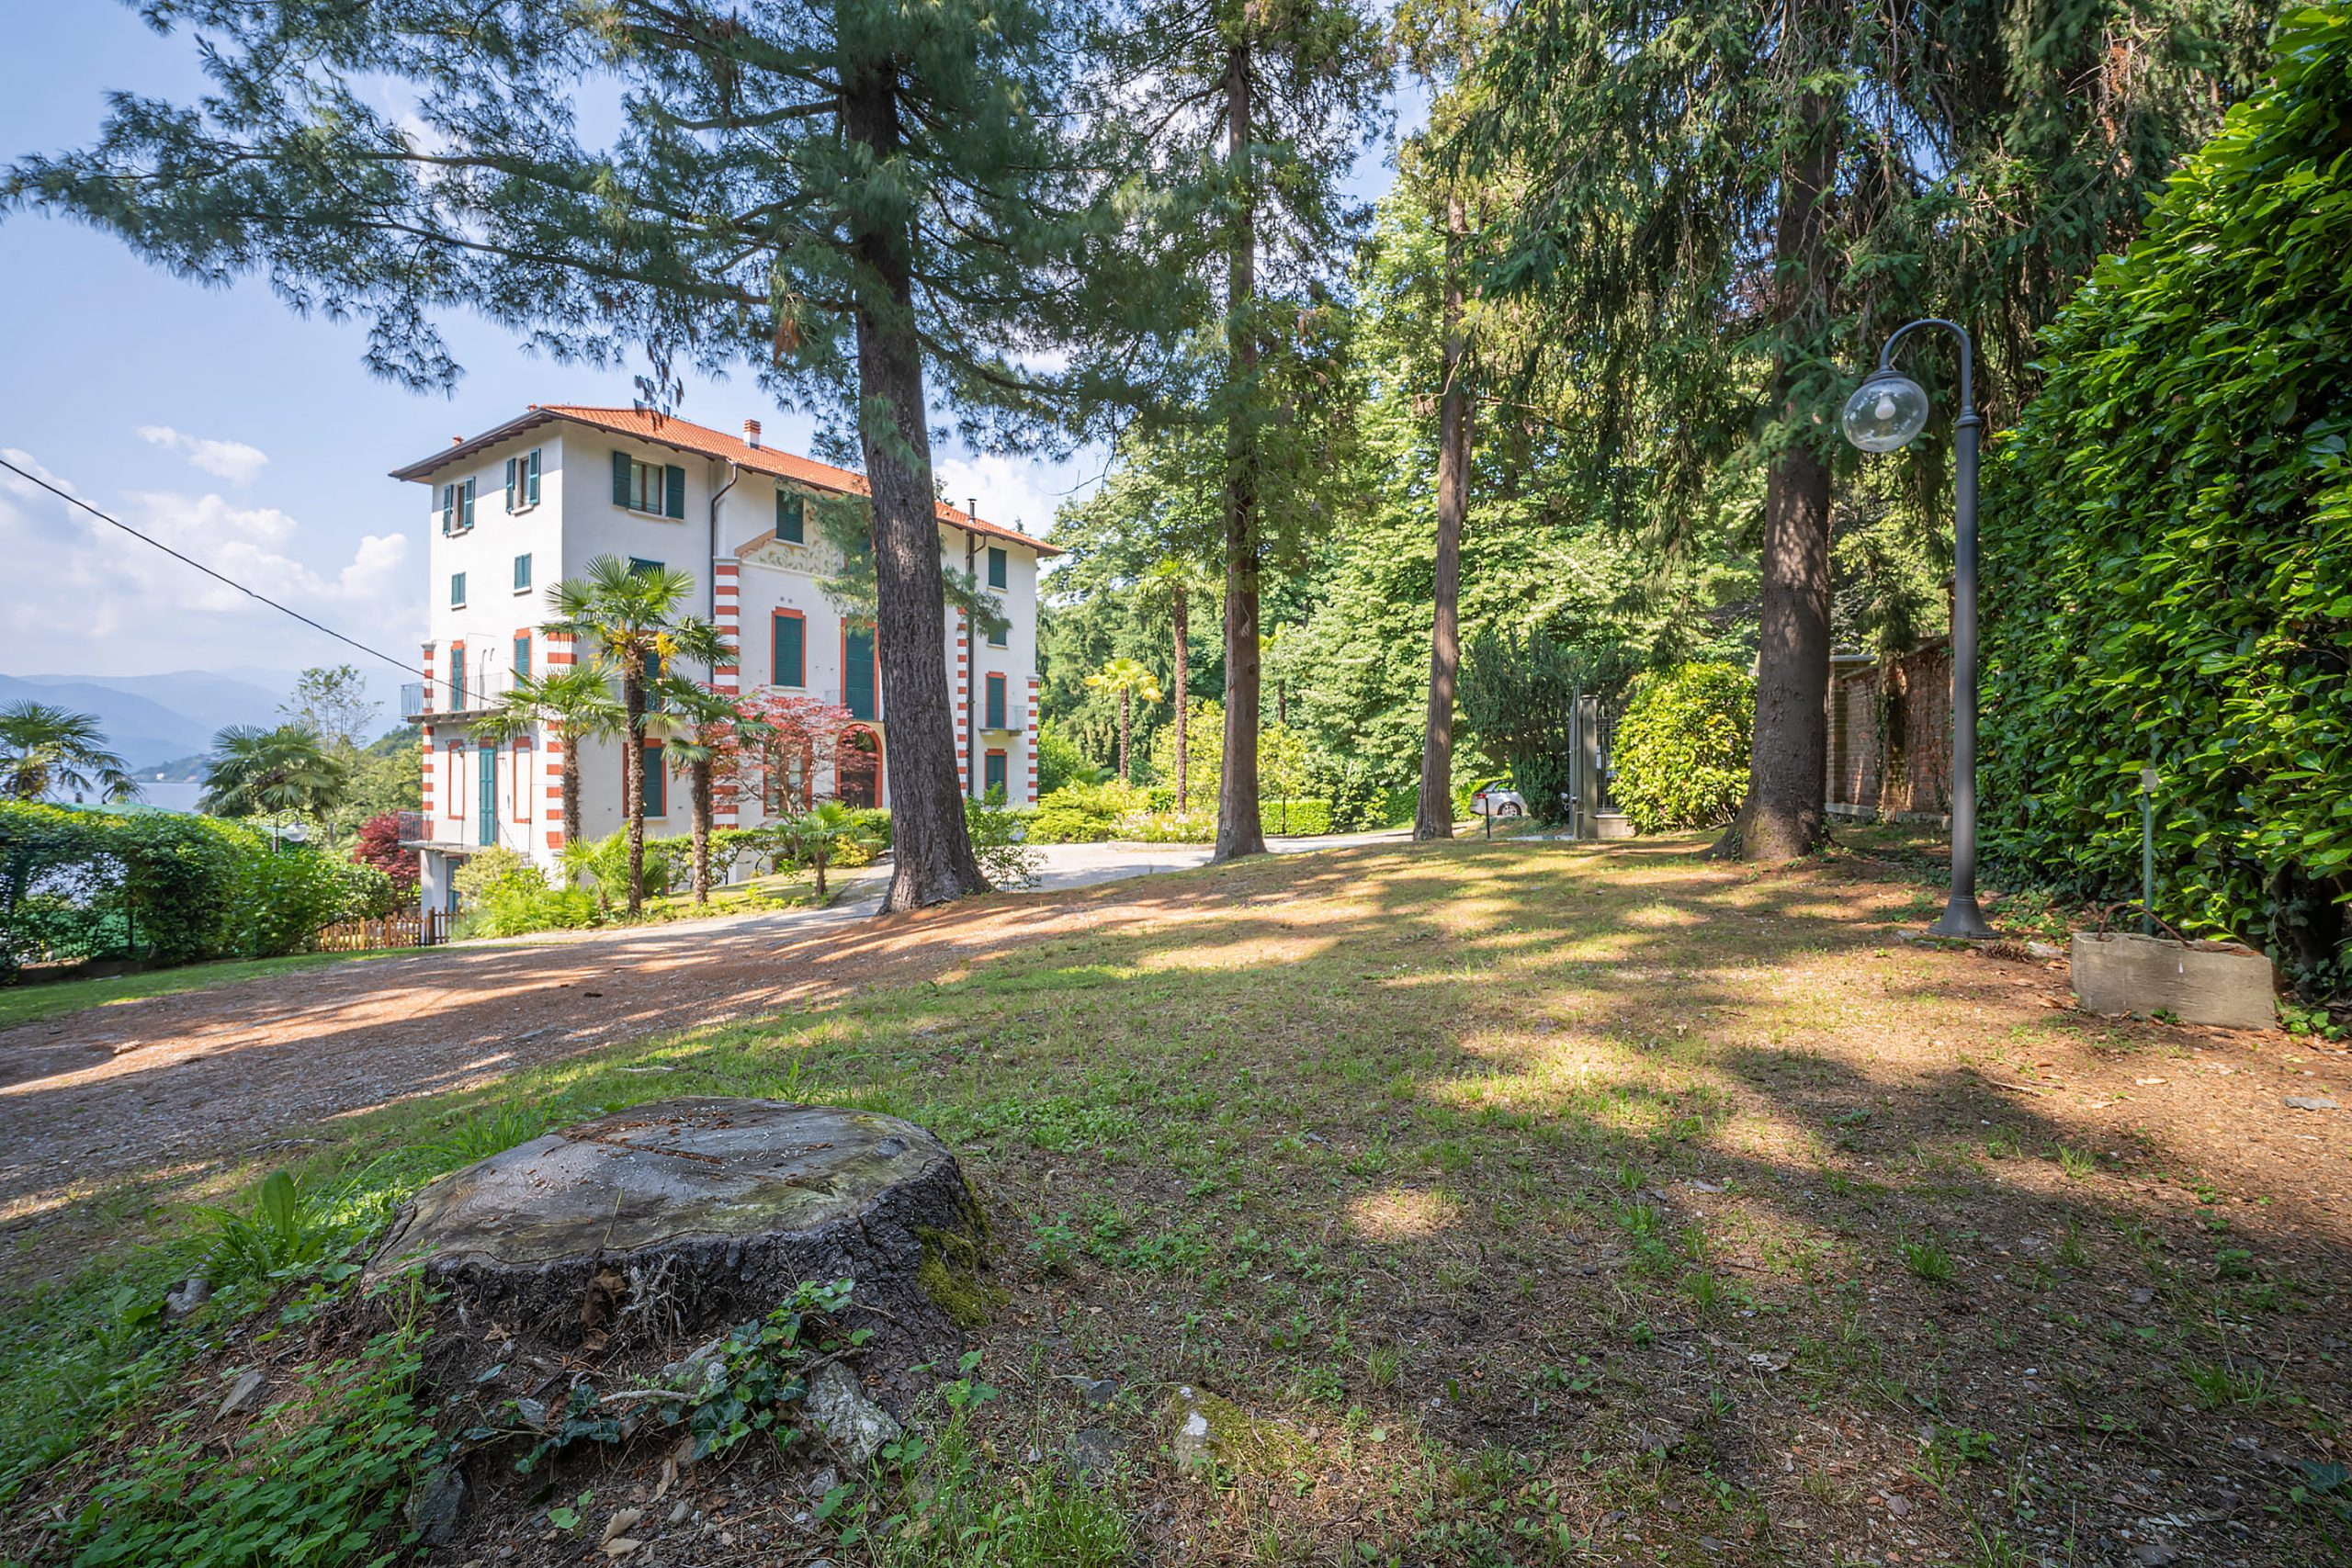 GOZZANO Apartment with two bedrooms two bathrooms and a pool